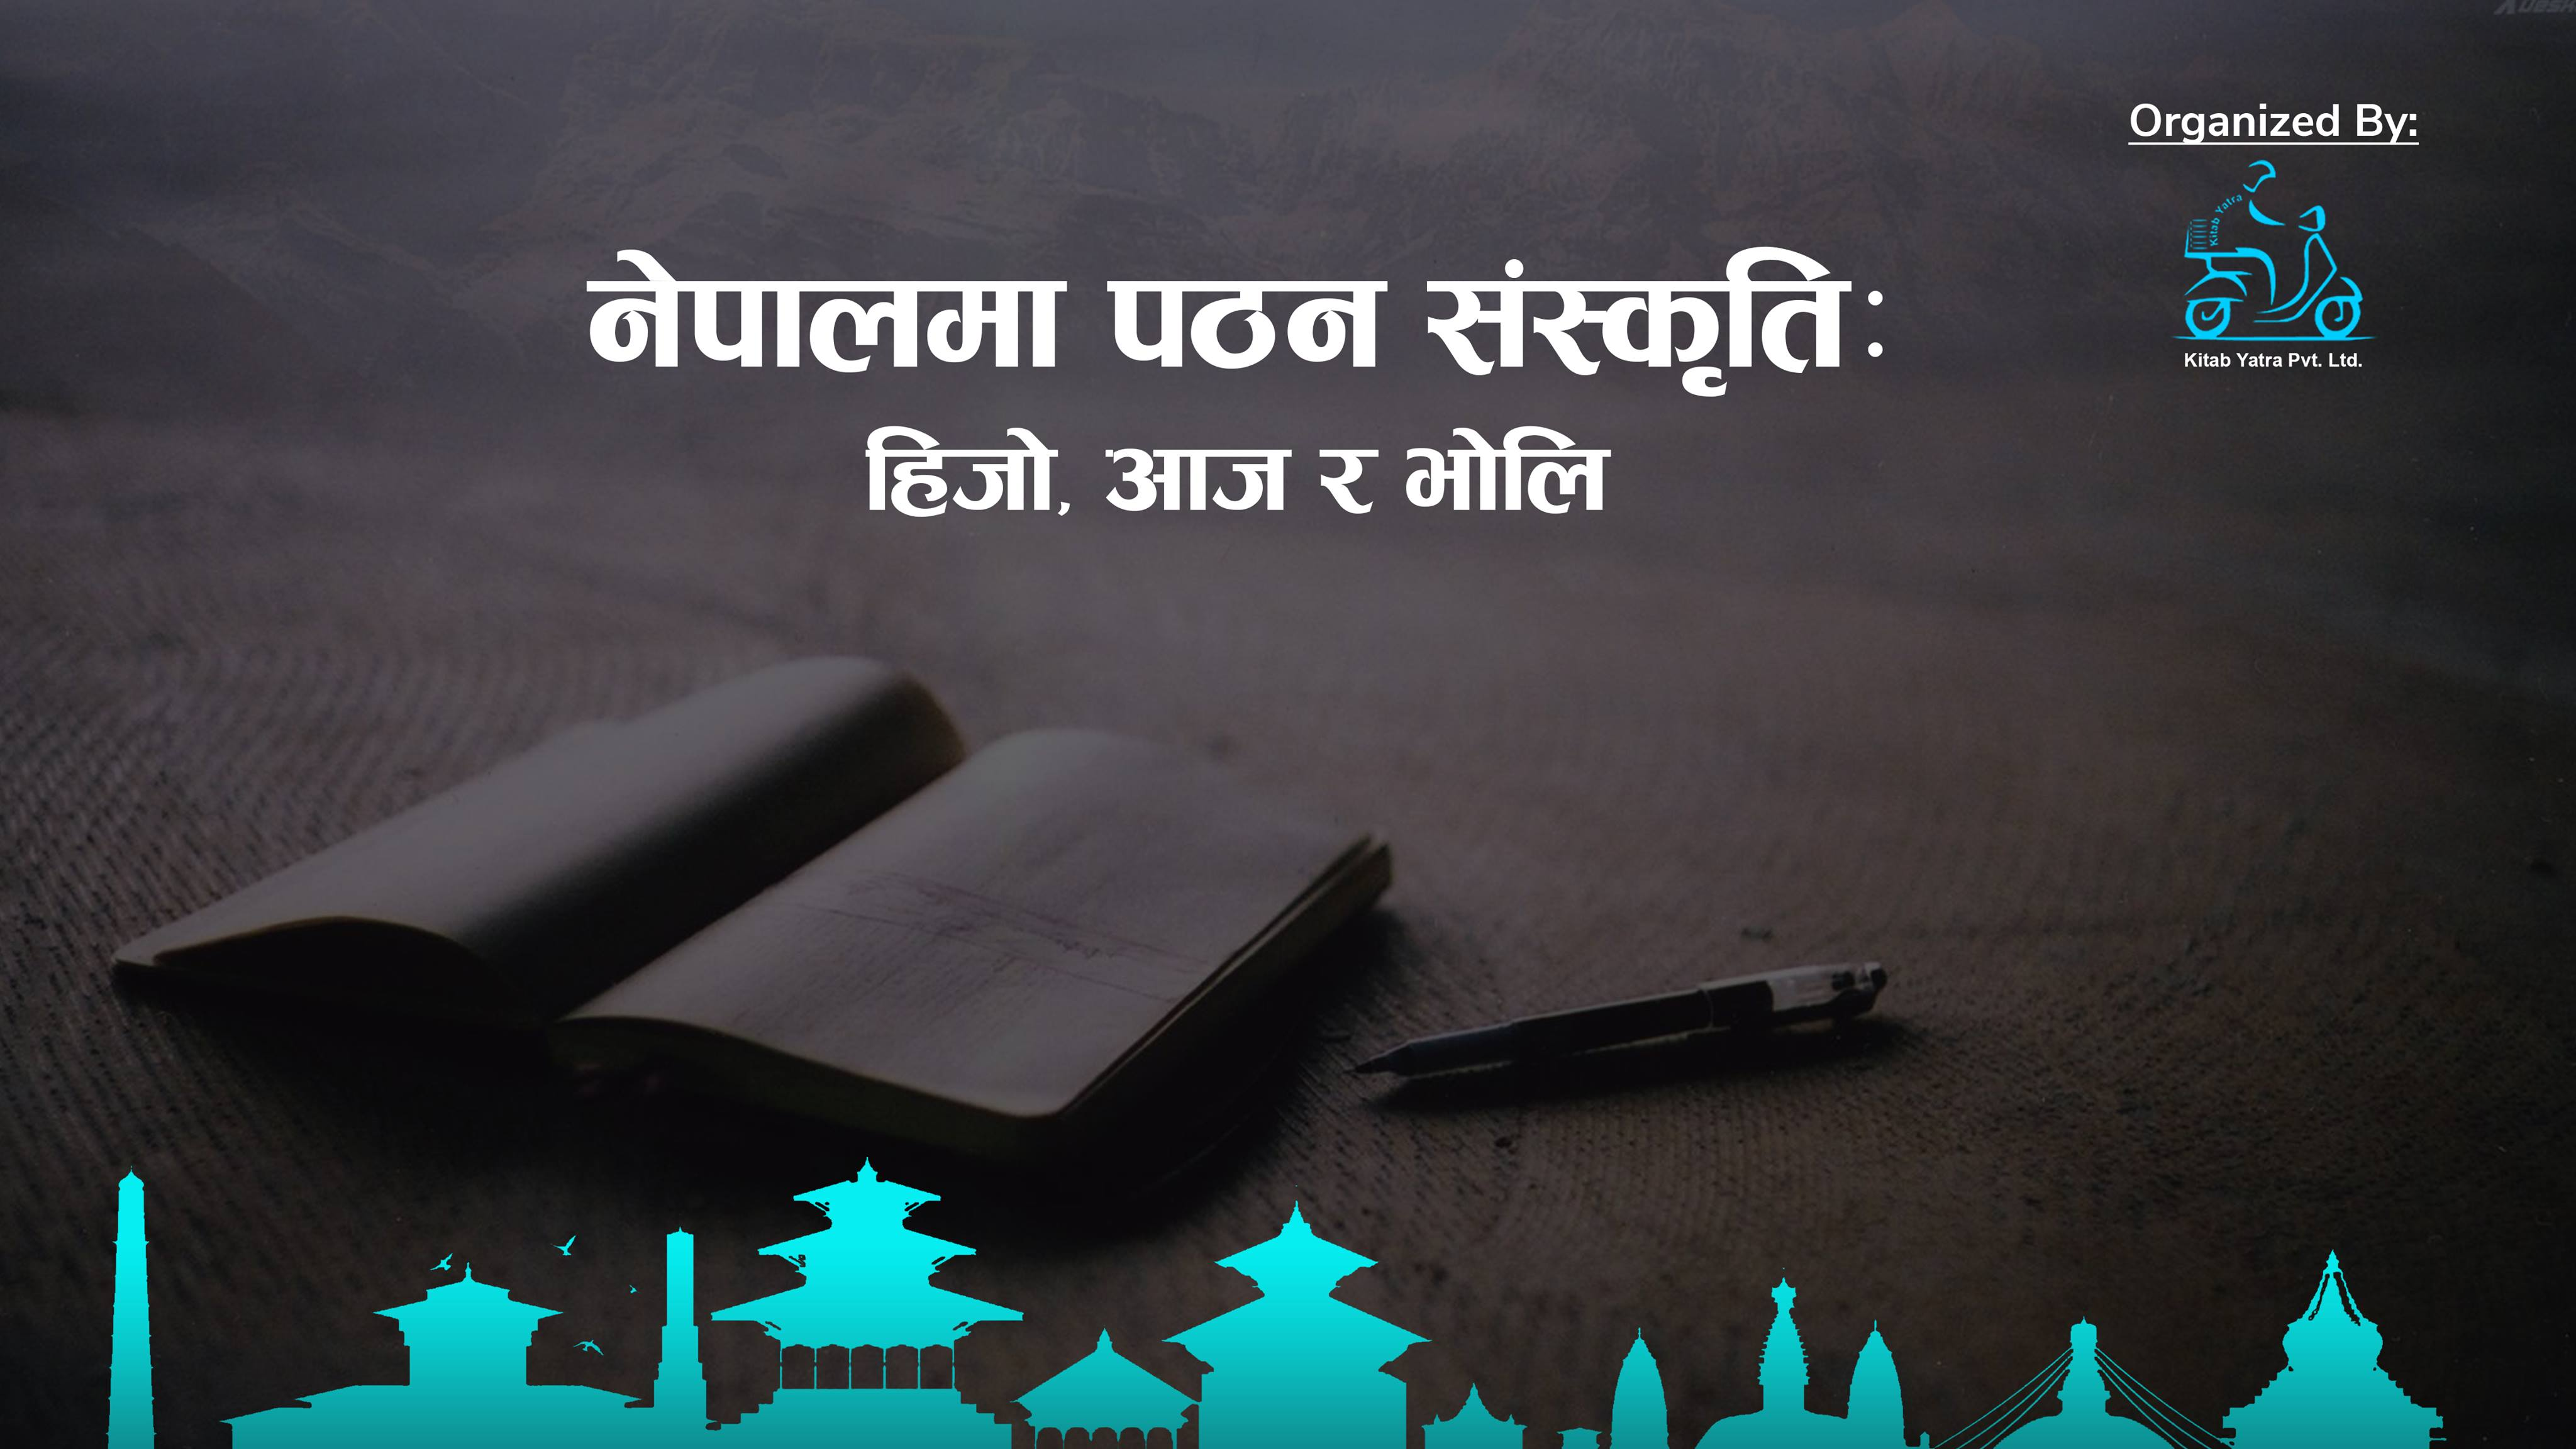 Kitab Yatra celebrating first anniversary organizing an event to promote reading culture in Nepal